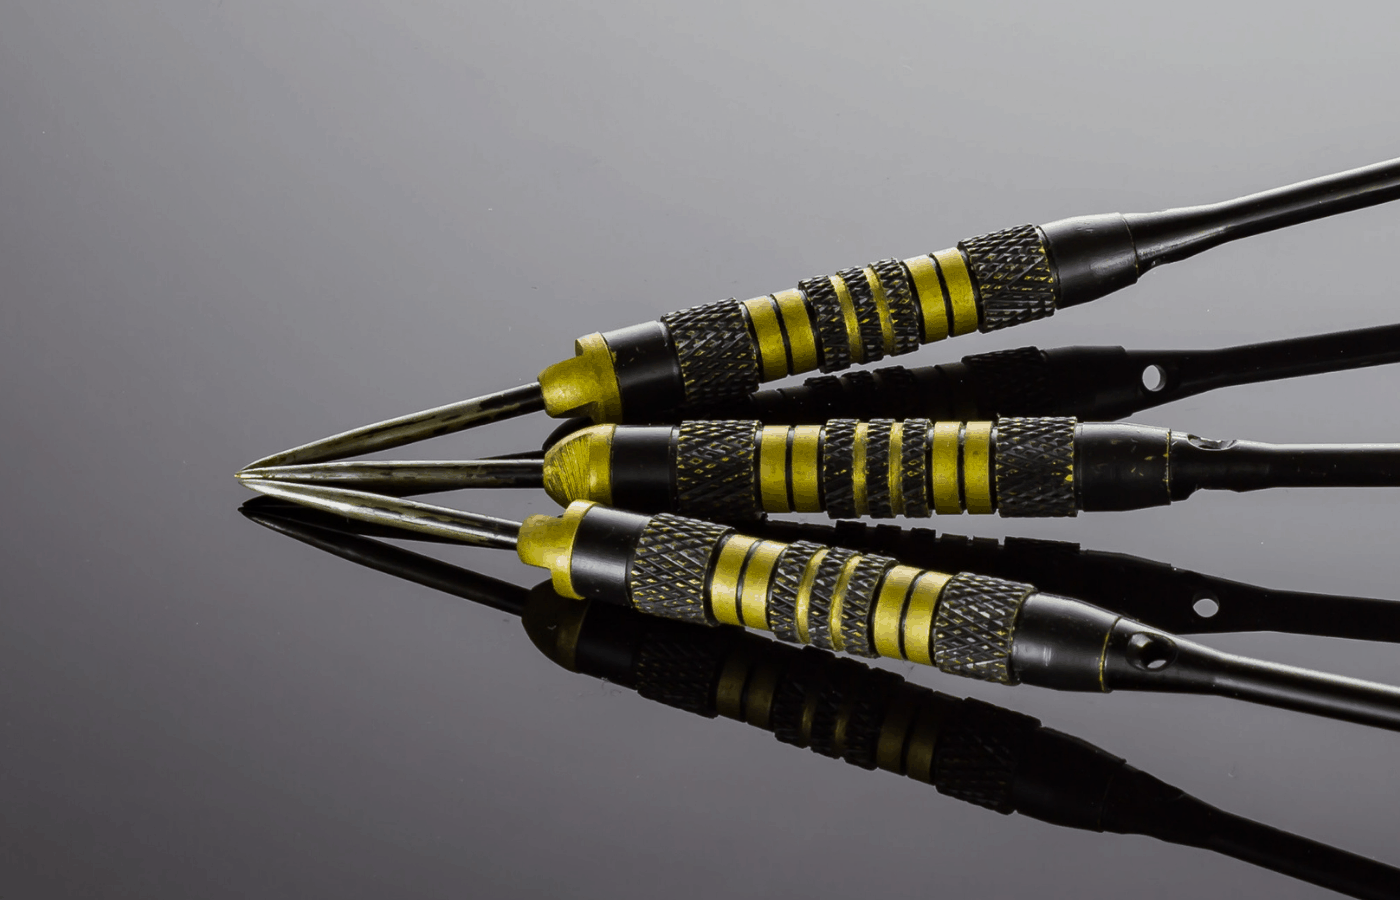 what are dart tips made out of